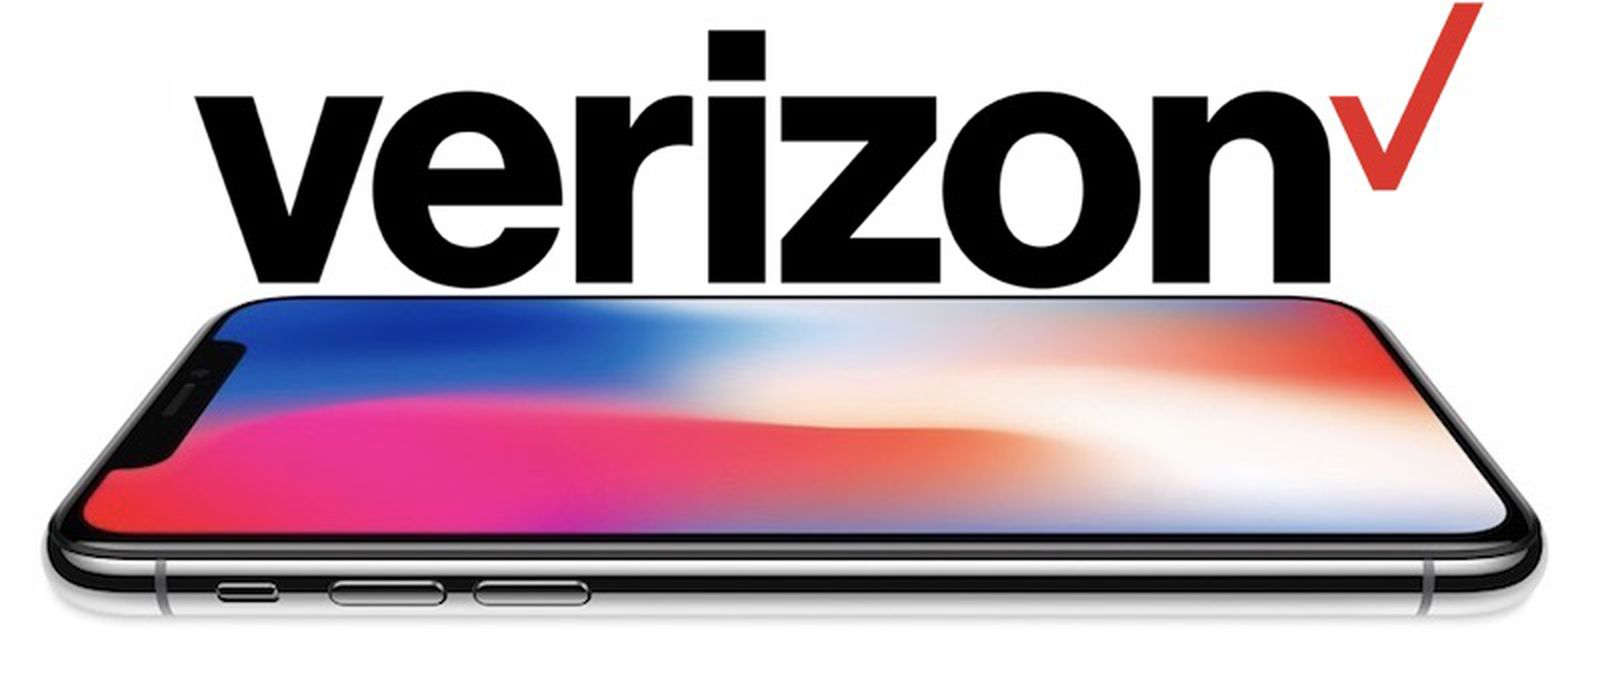 Verizon Details New Bogo Deal Buy One Iphone 8 8 Plus Or X And Get 699 Off Second Macrumors